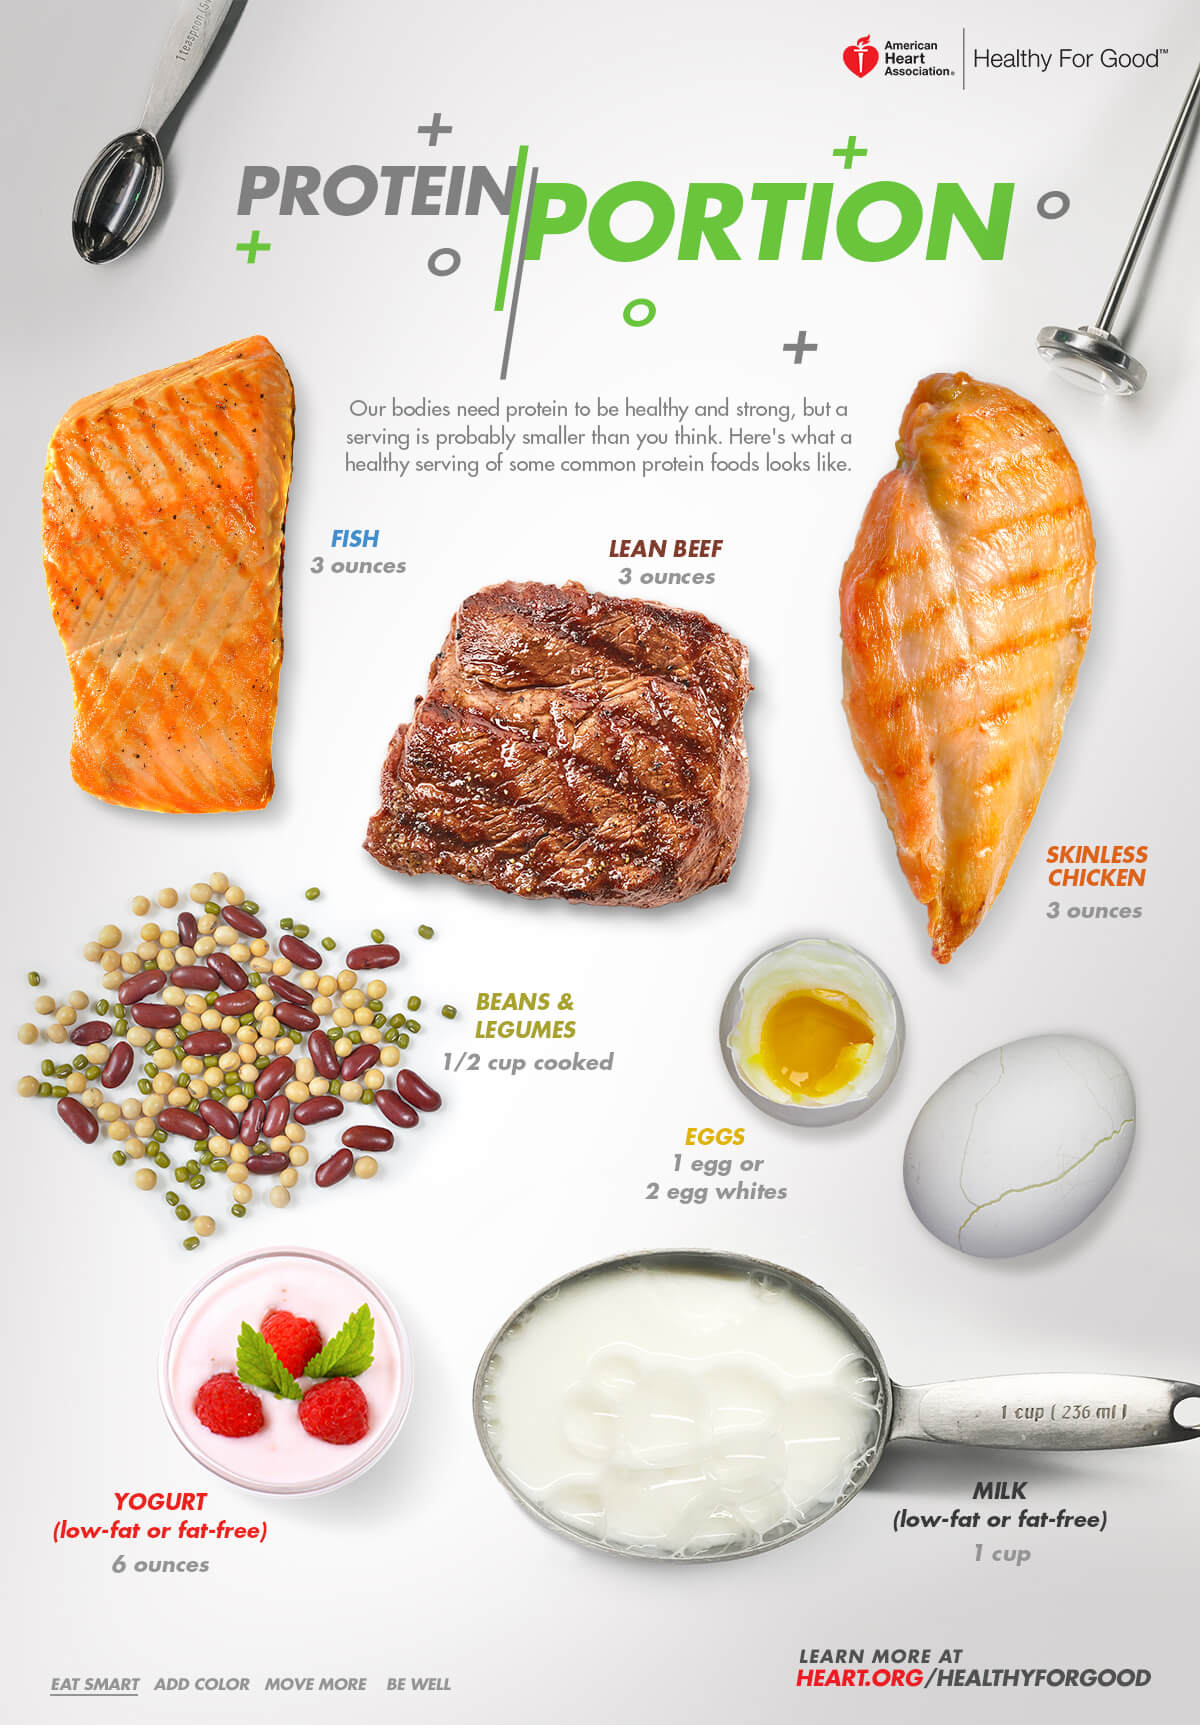 Heart-Healthy Protein: How to Go Lean